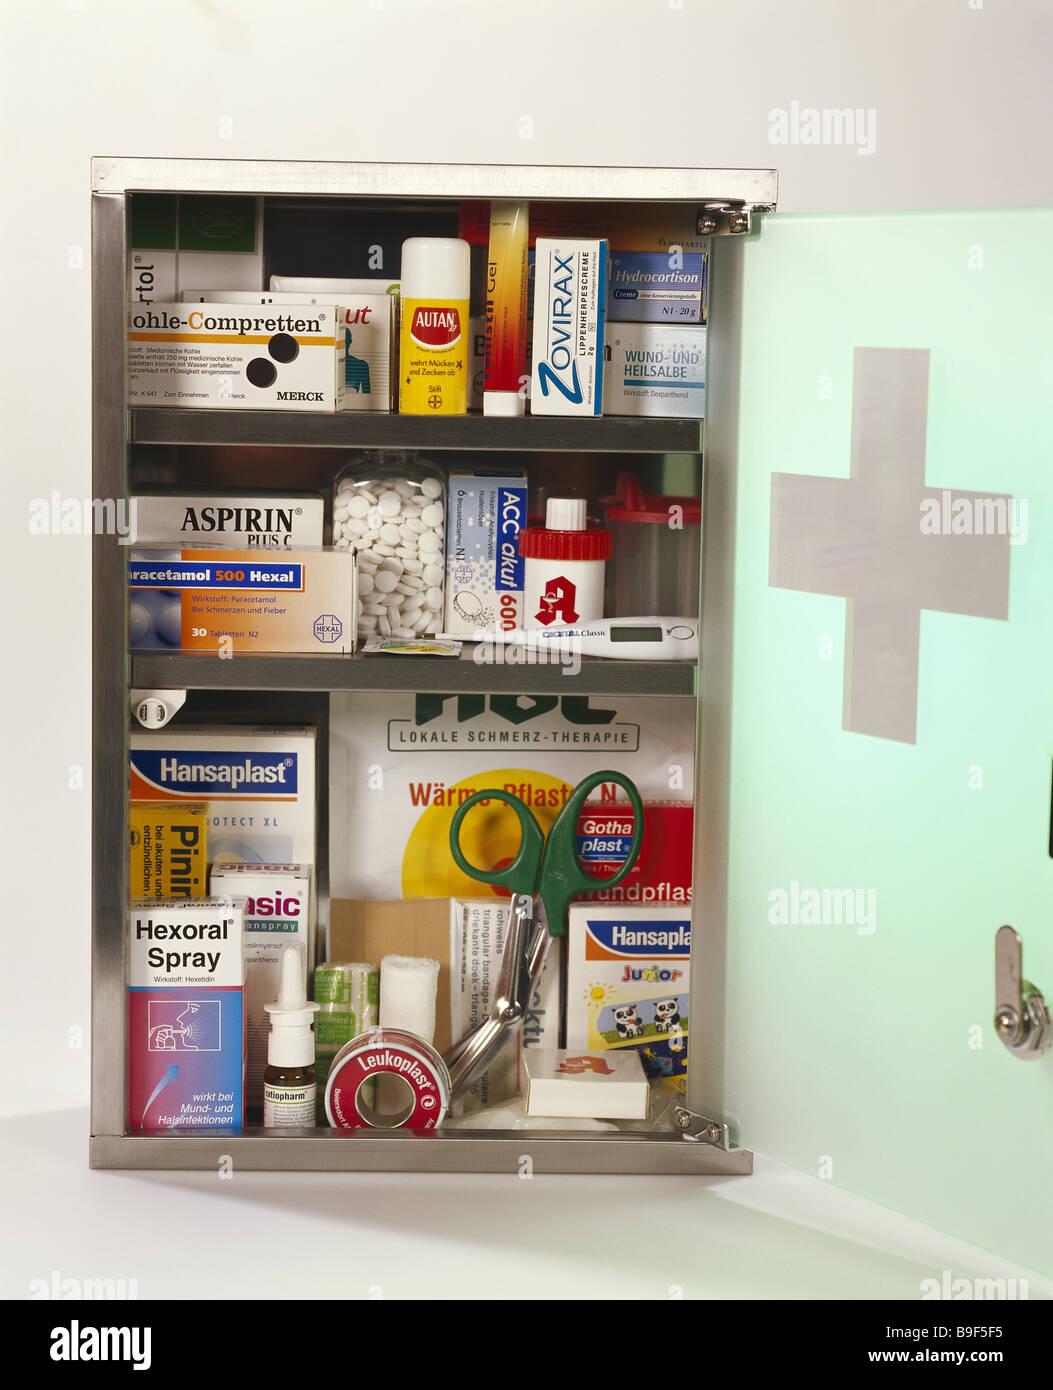 Delicieux Medicine Closet Opened Medication No Property Release Restricting Little  Little Closet House Pharmacy First